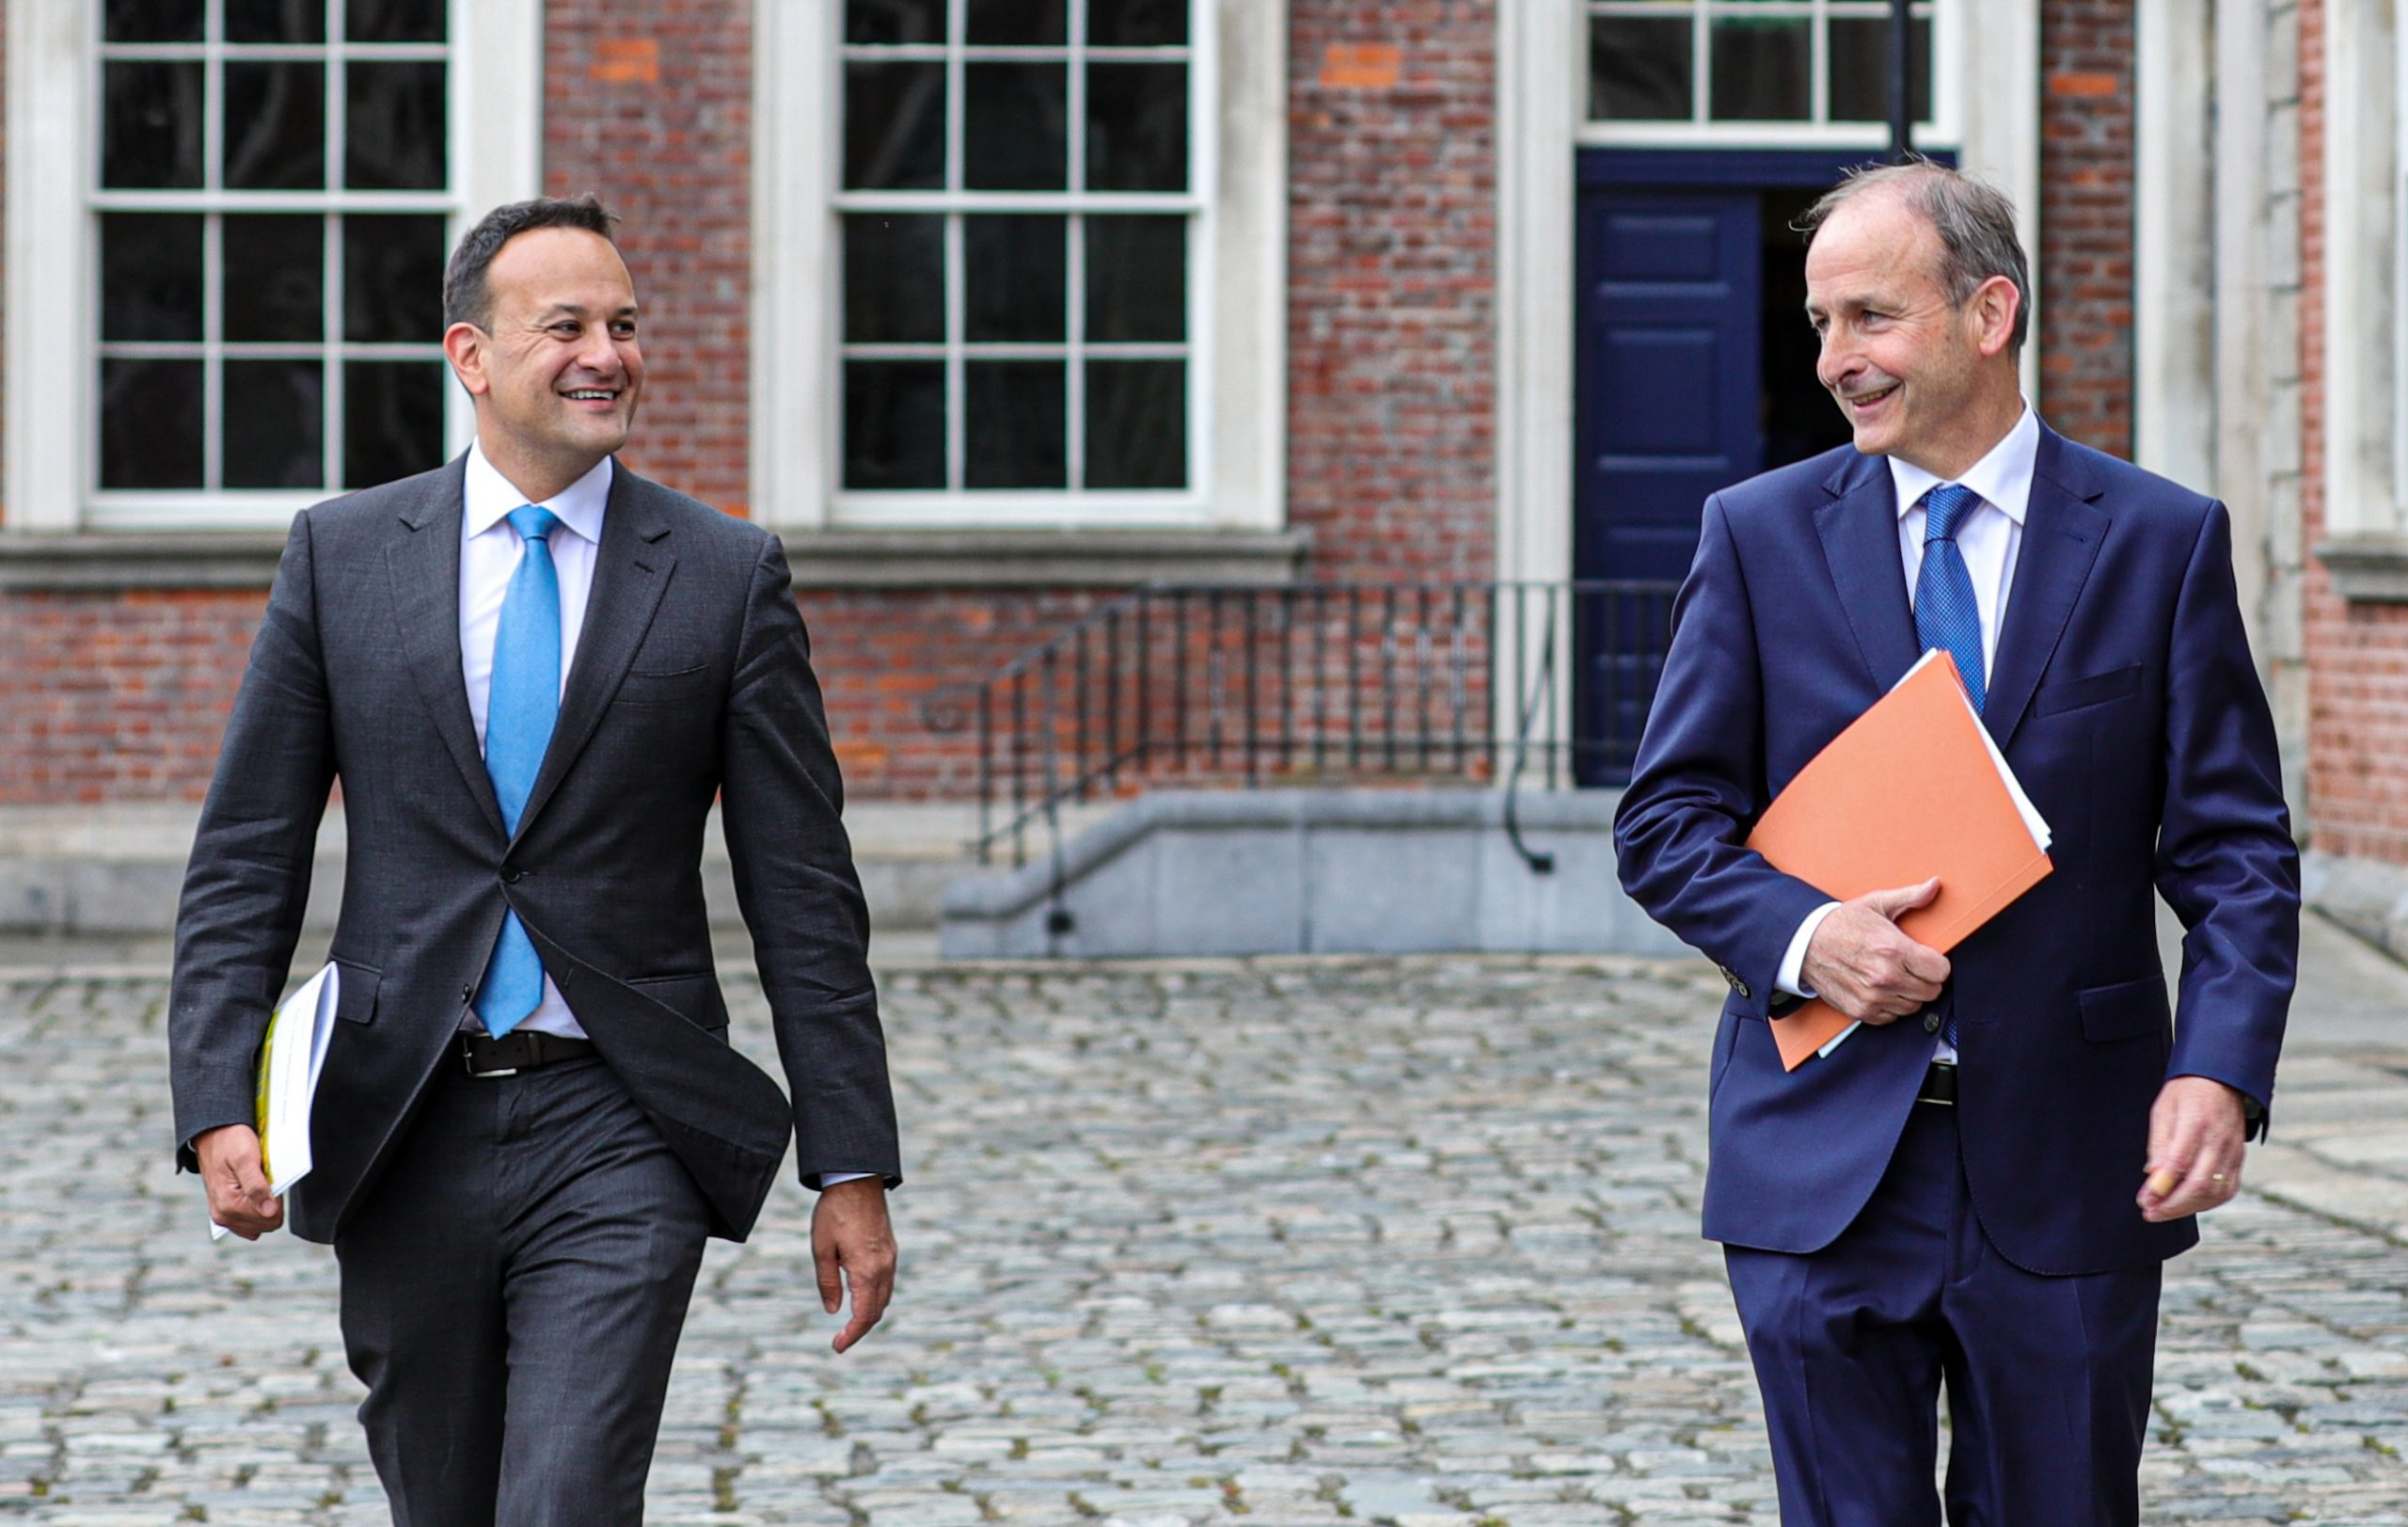 Covid Recovery Plan – Ireland gets set for re-opening